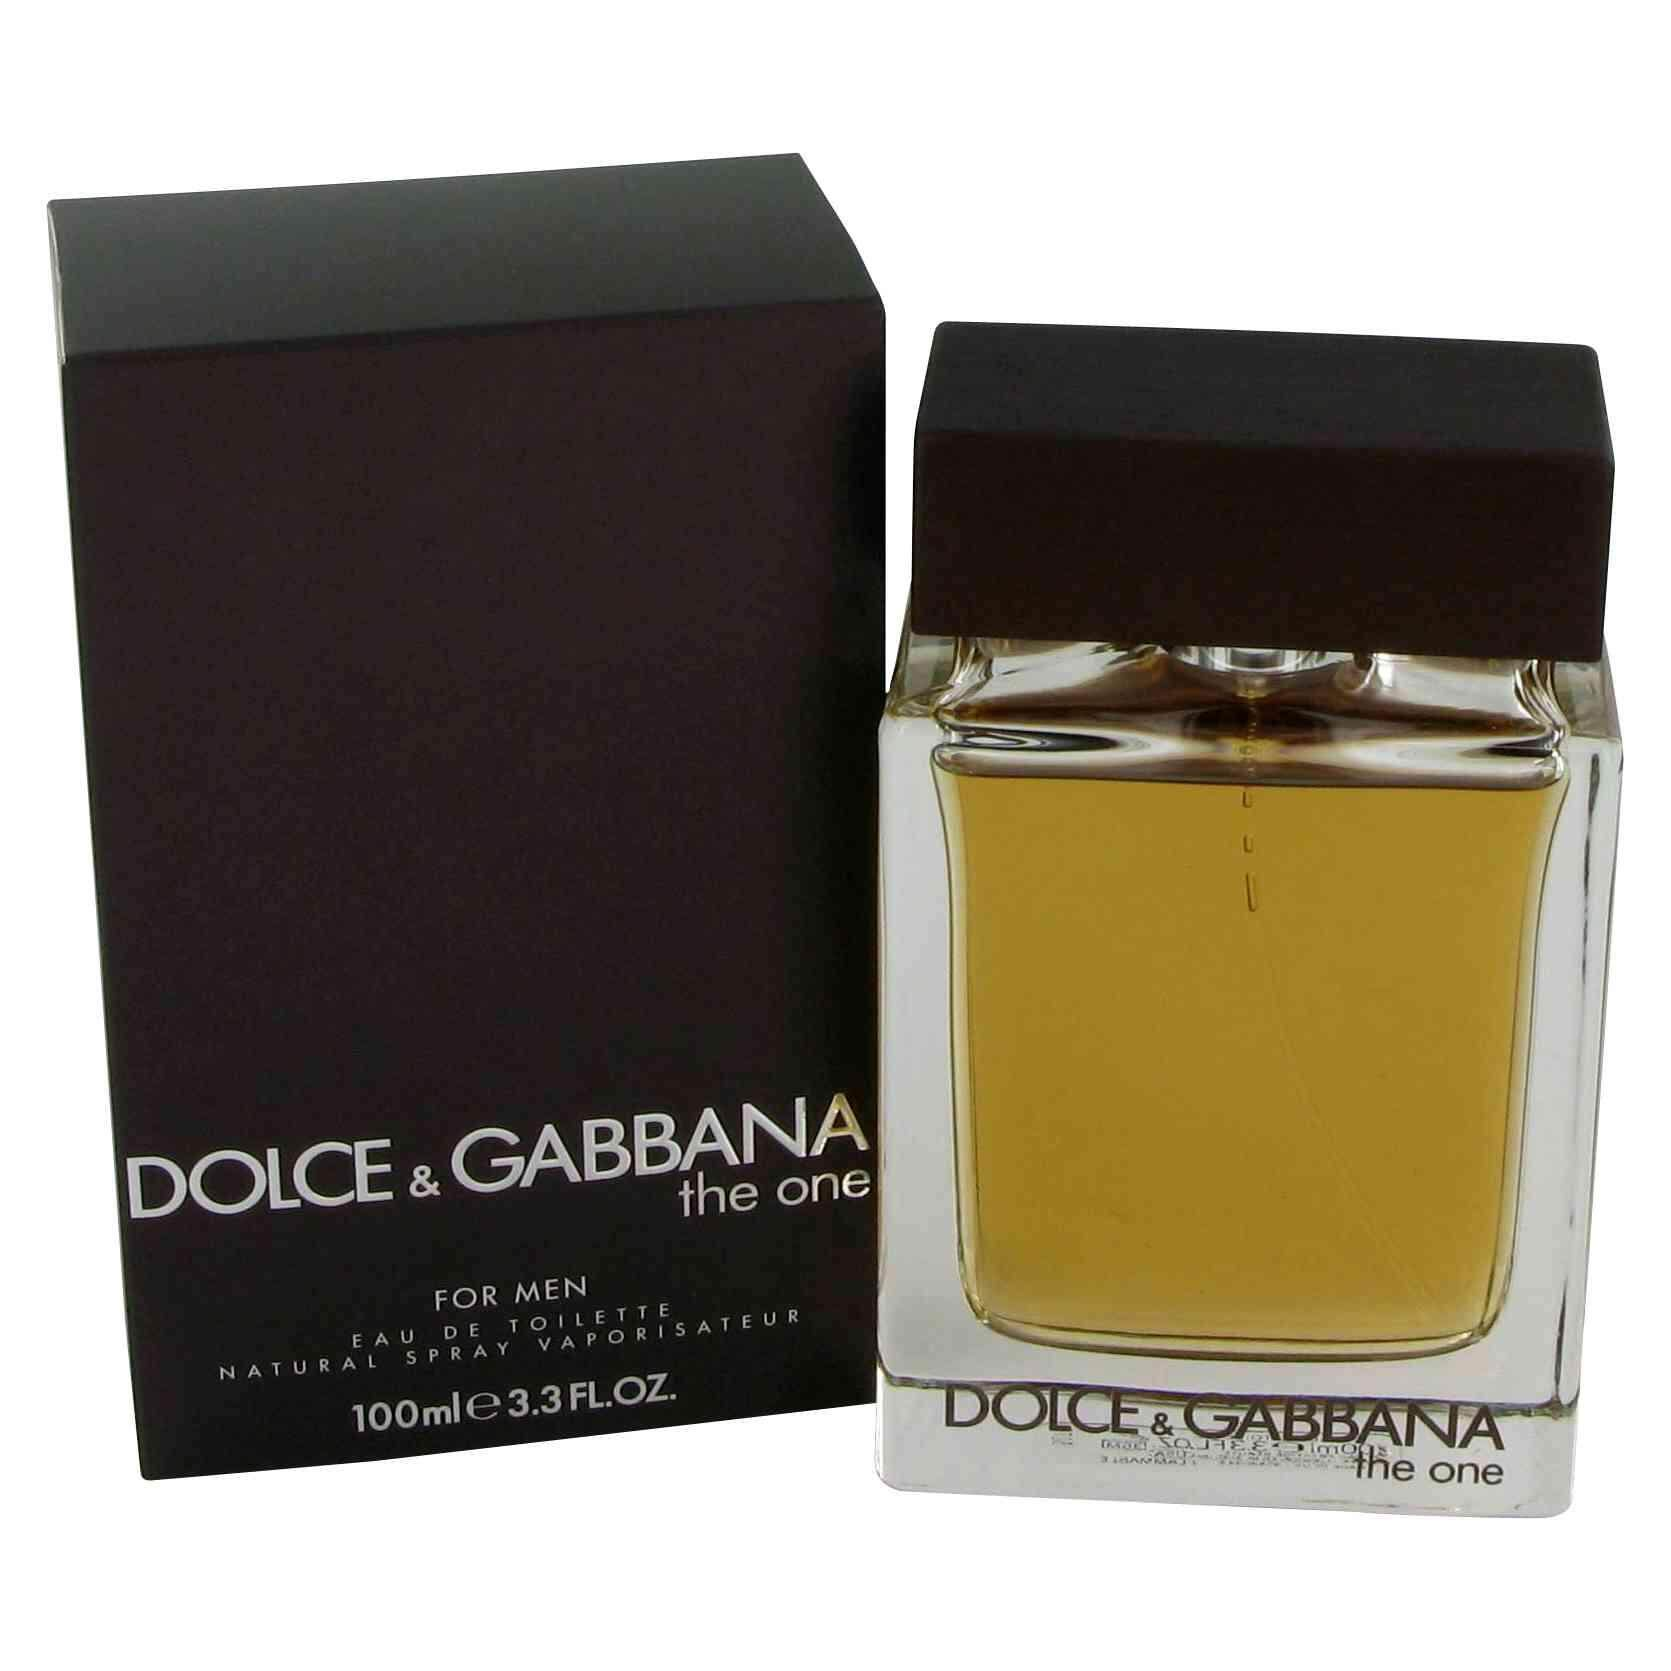 473f8696d4cef6 Dolce   Gabbana Health   Beauty - Fragrances price in Malaysia ...